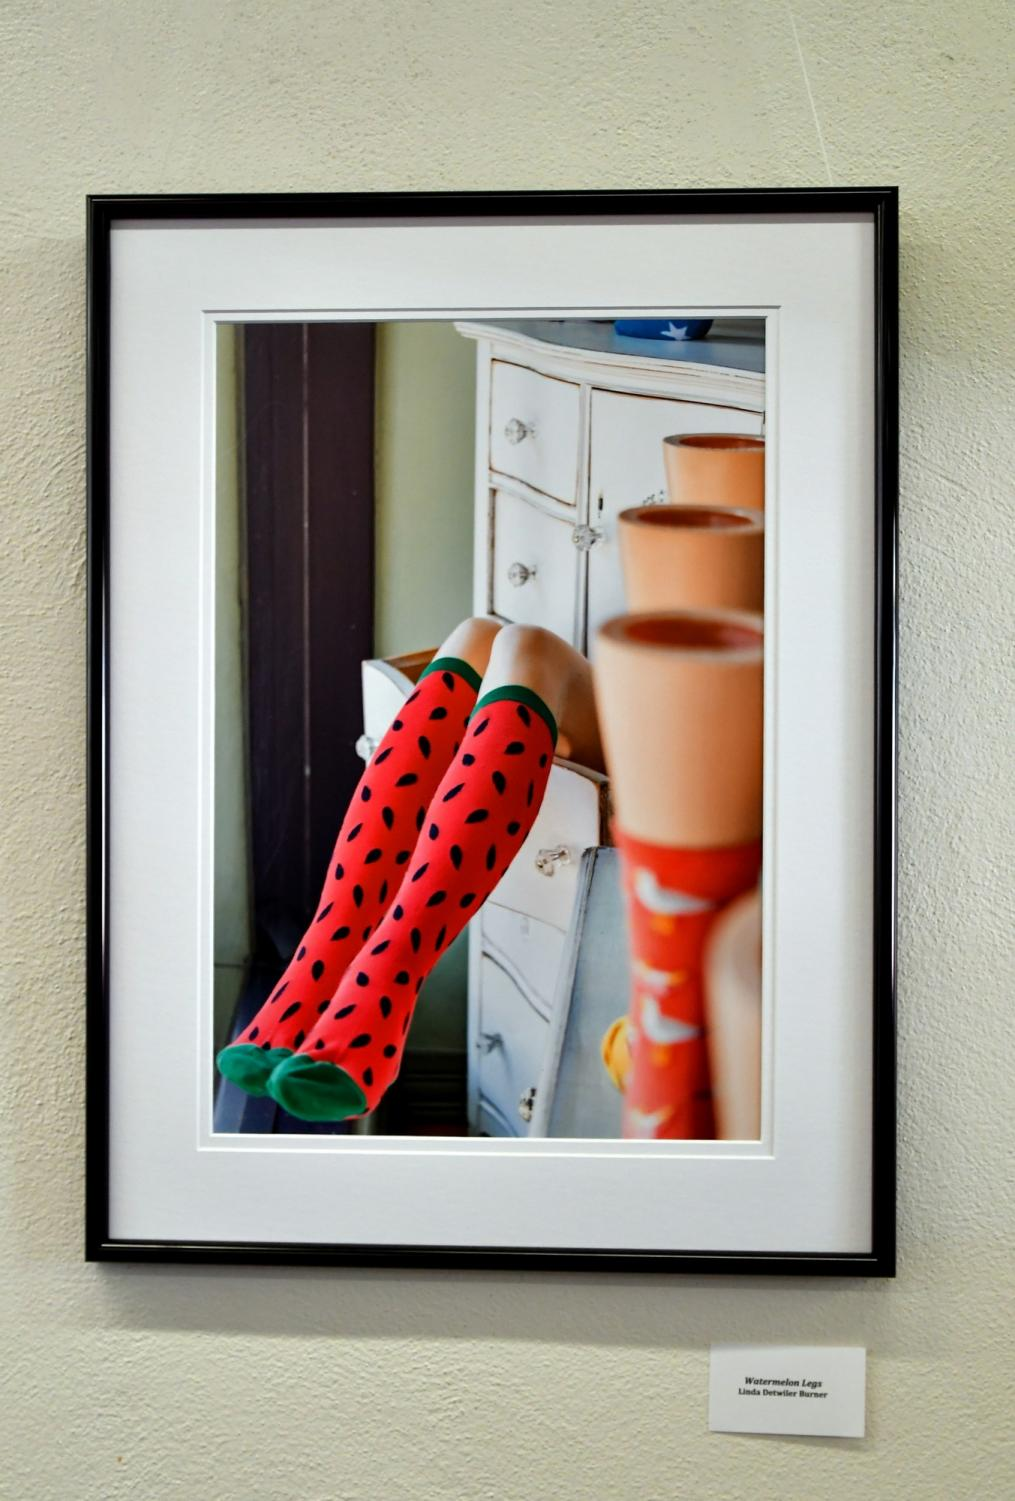 """Watermelon Legs"" was shot by Linda Detwiler Burner, who is the curator and has been the club president of the South Bay Camera Club for the past two years. Photo credit: Jack Kan"